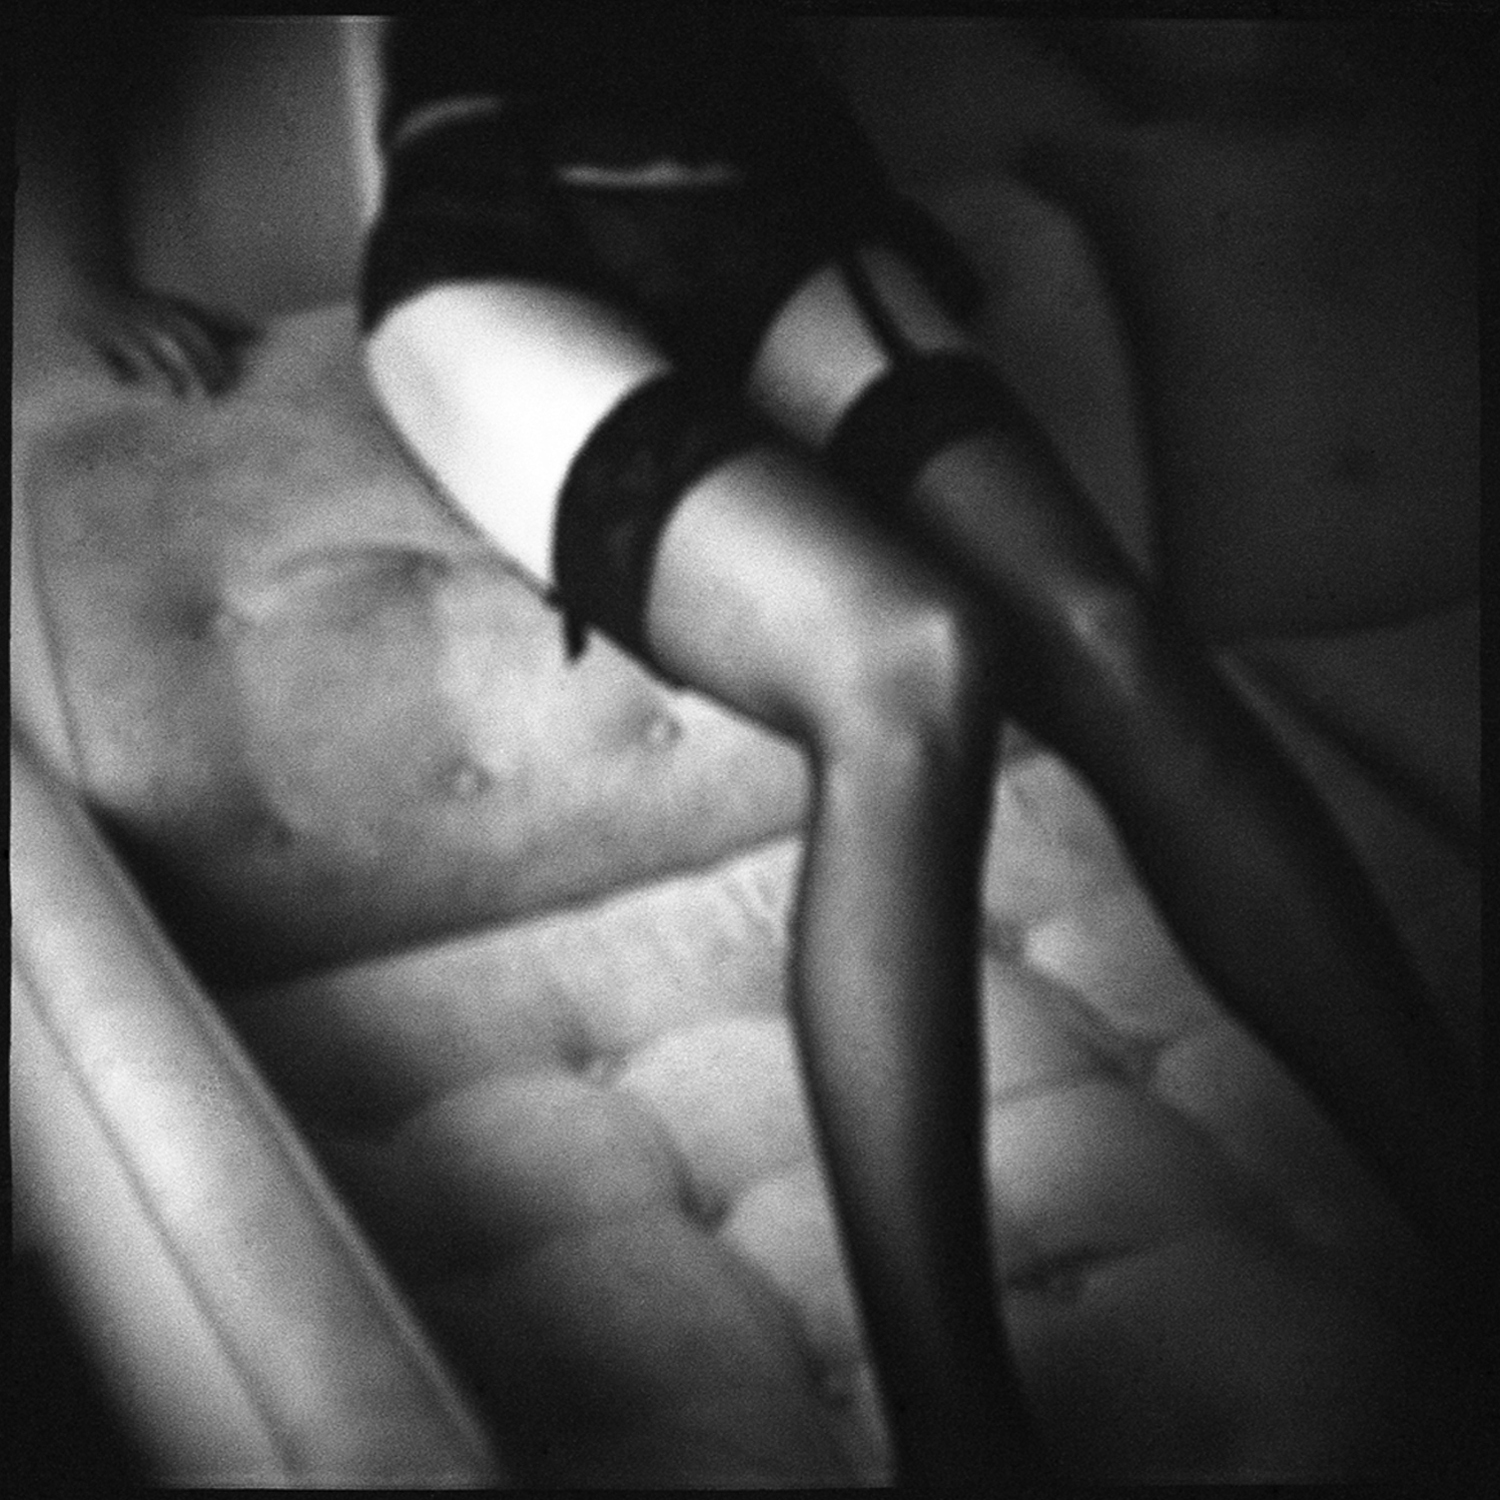 """legs in stockings black and white on couch"""